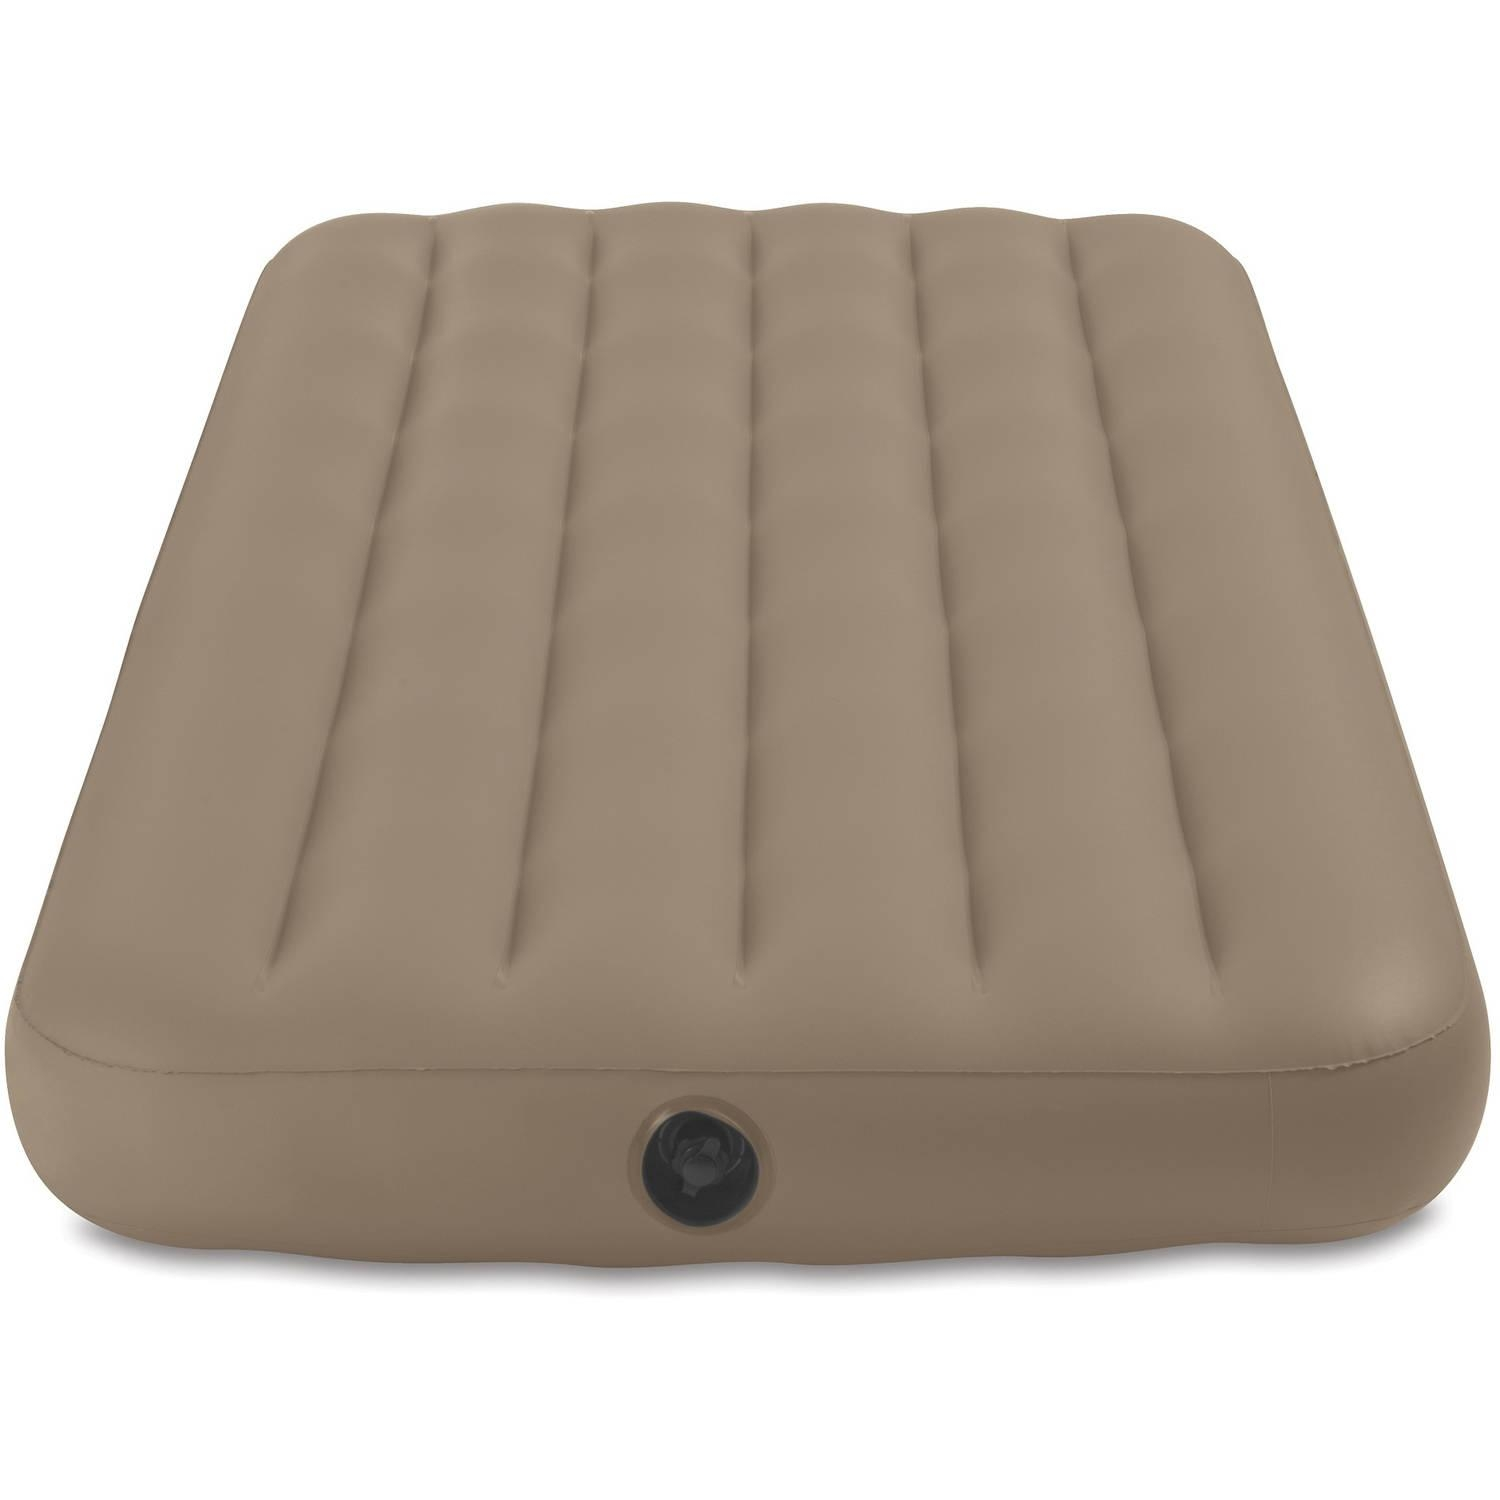 Mattresses : Air Mattress Twin Inflatable Mattress Walmart Air In Inflatable Full Size Mattress (View 9 of 20)